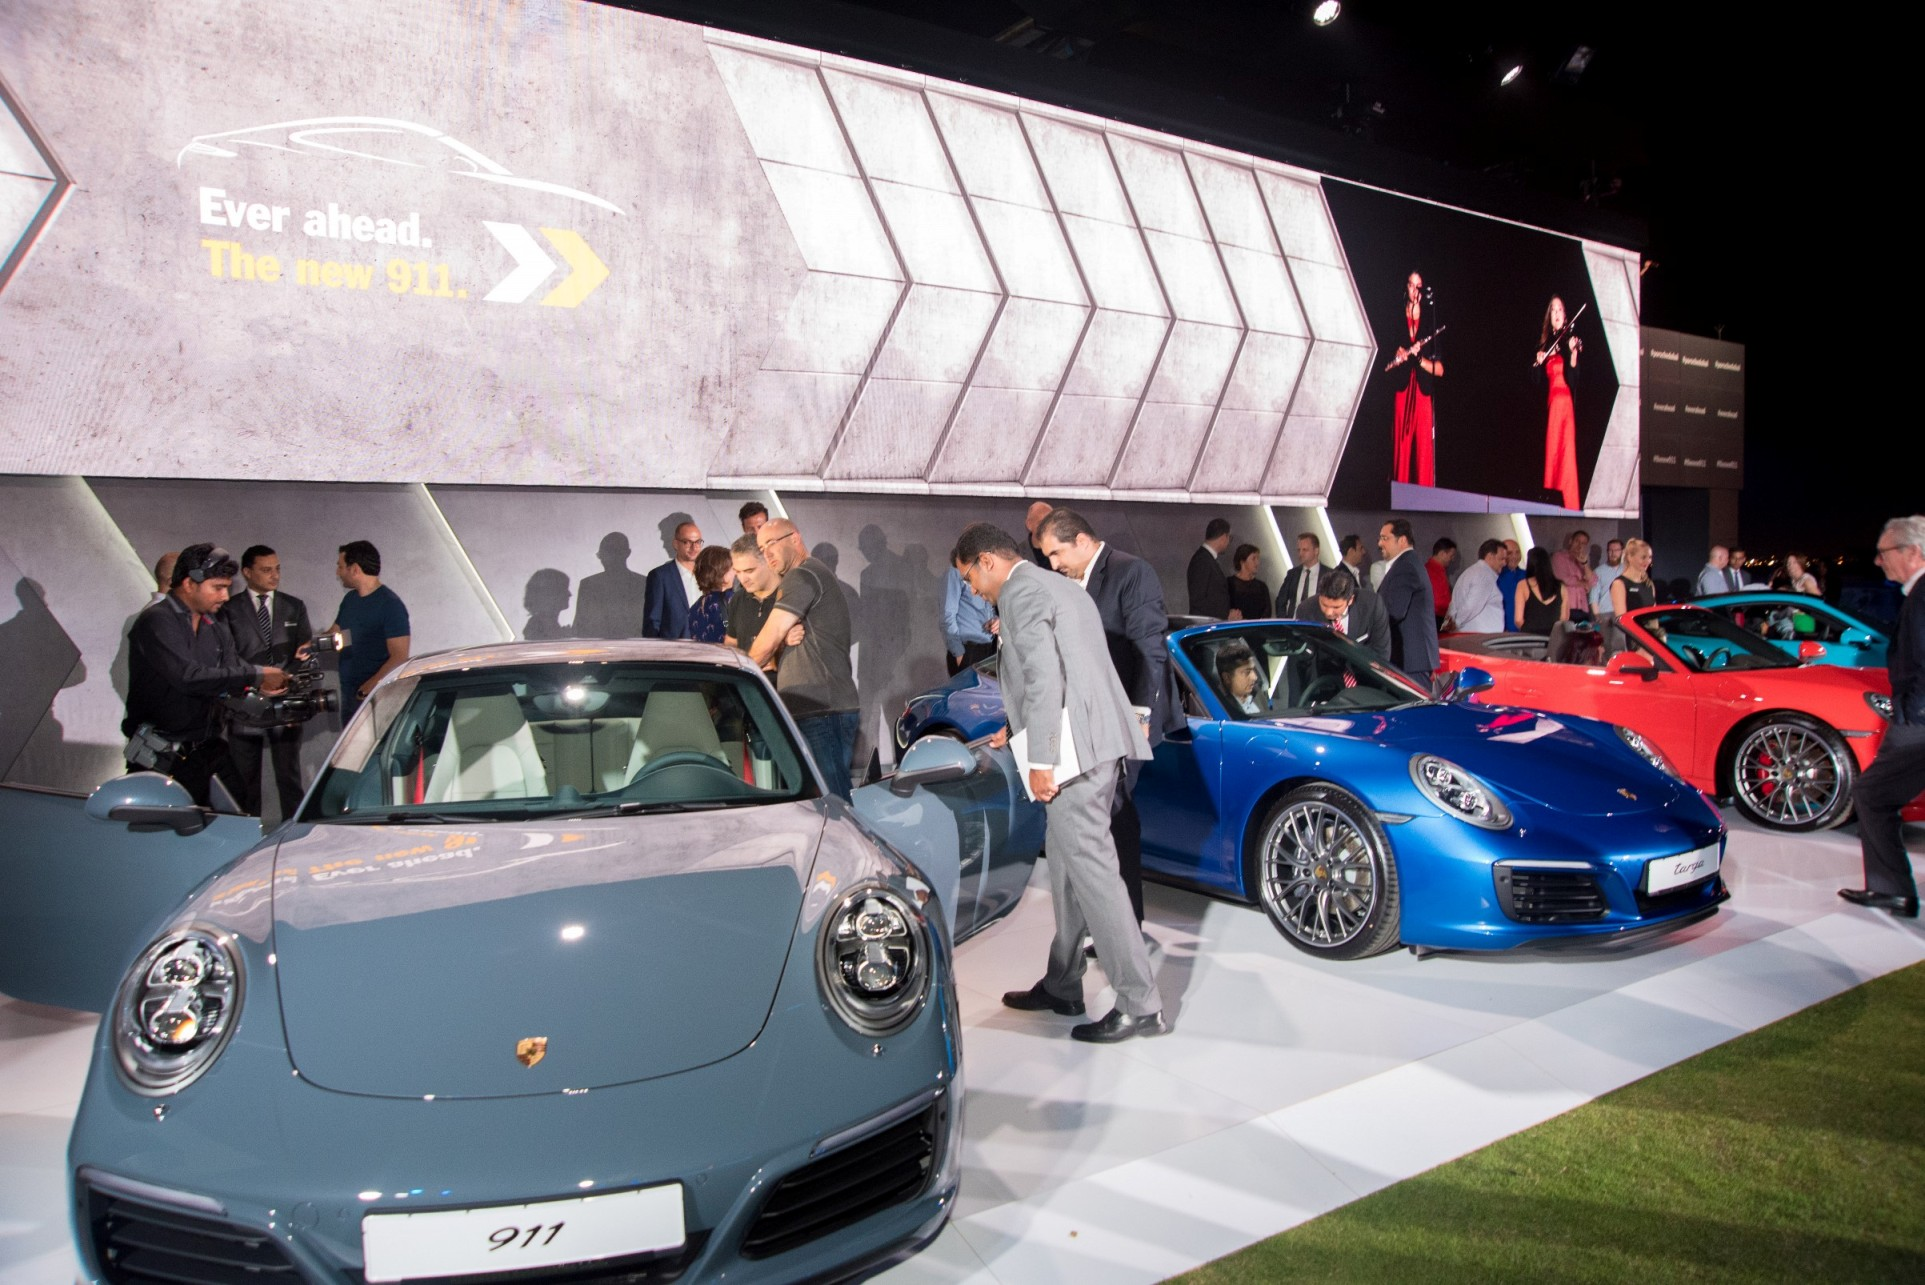 Guests invited to check out new Porsches